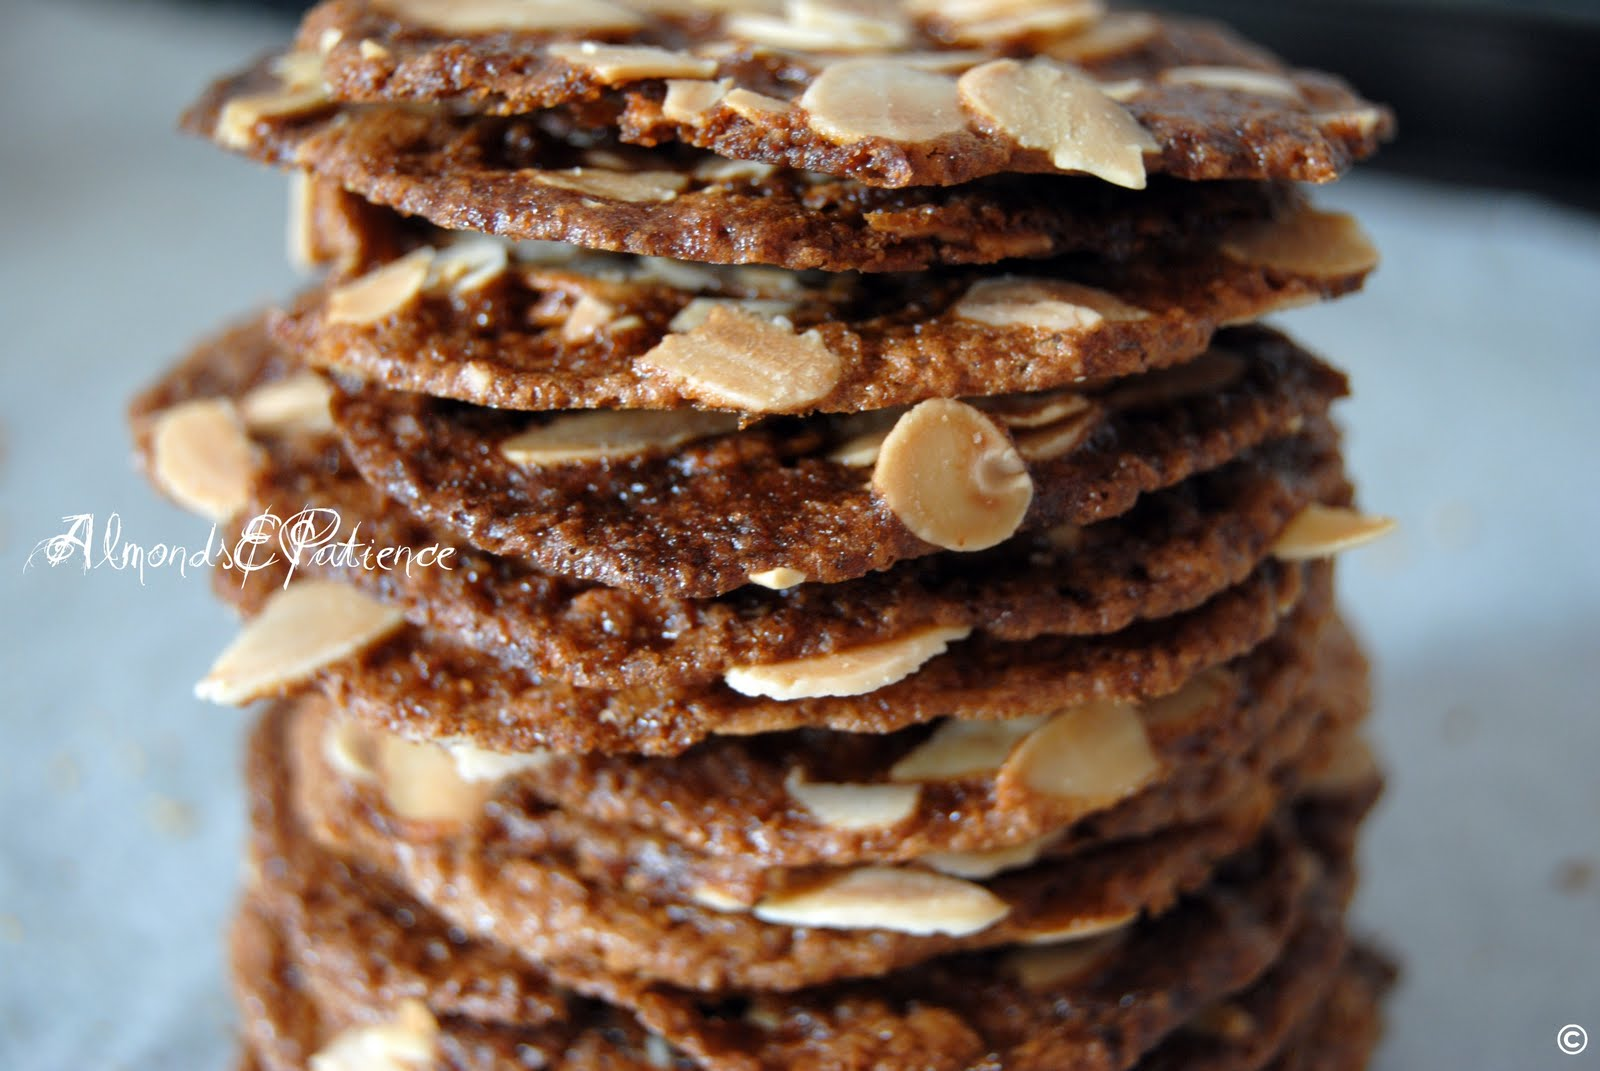 Wafer di mandorle - Almond wafers | Almonds&Patience